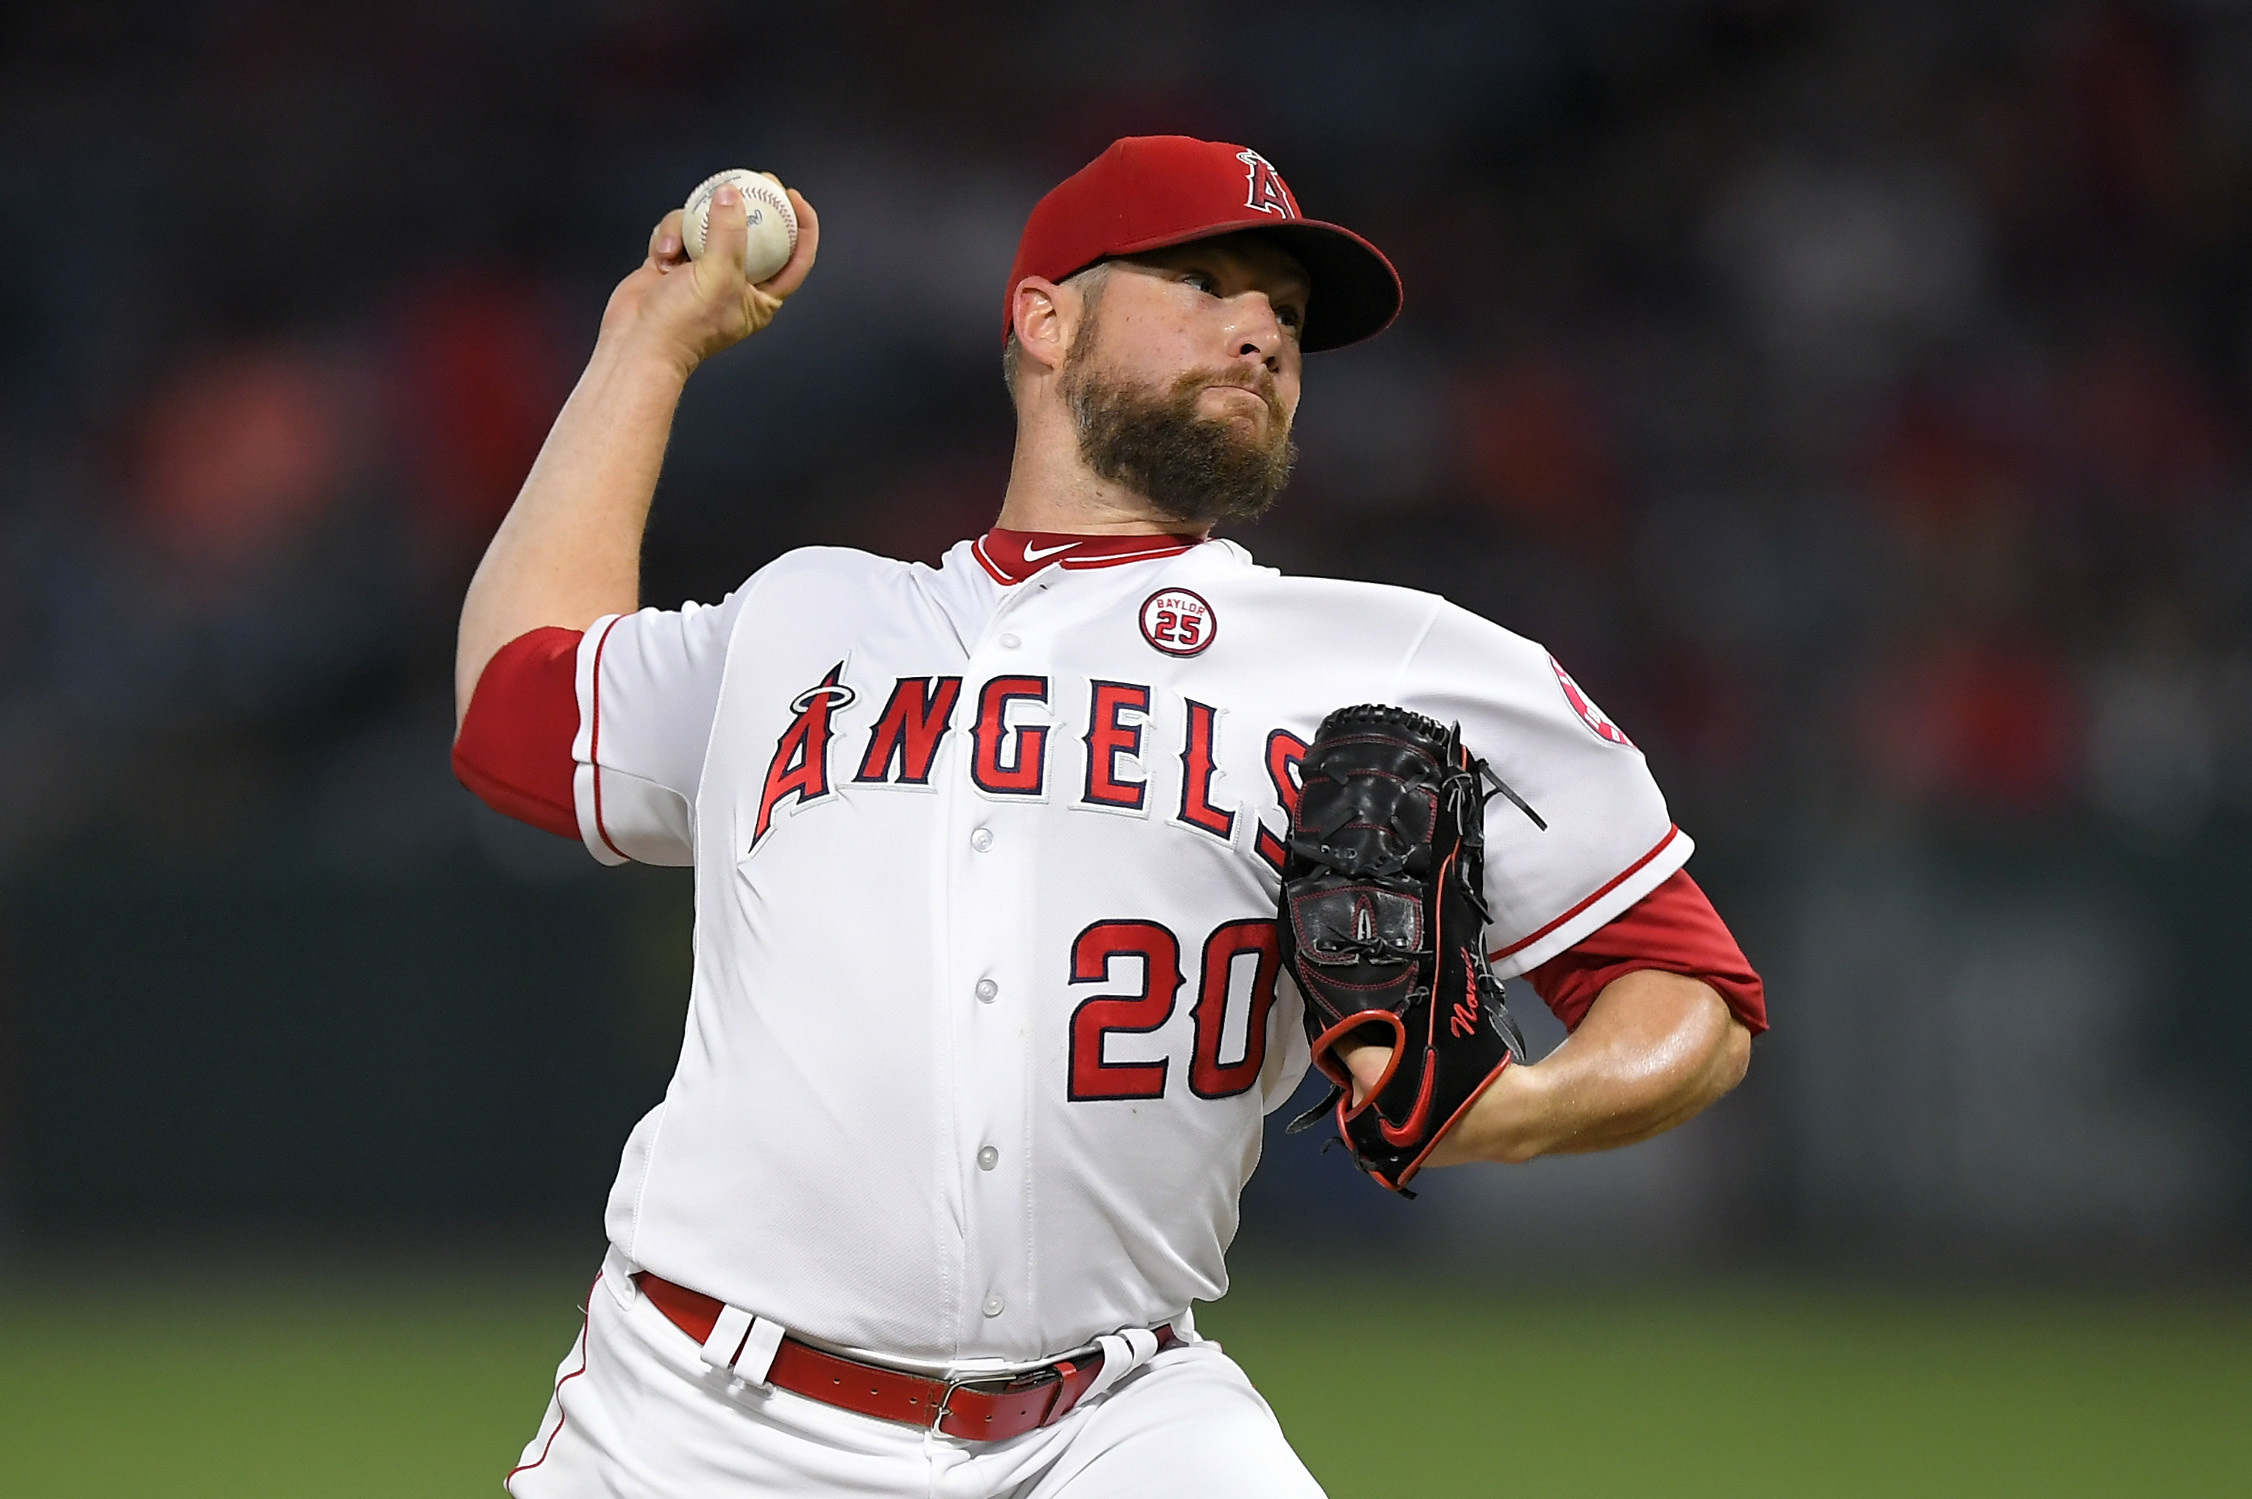 After making a surprise, Angels pitcher Bud Norris could miss out on a $500,000 bonus for relief appearances. (AP)